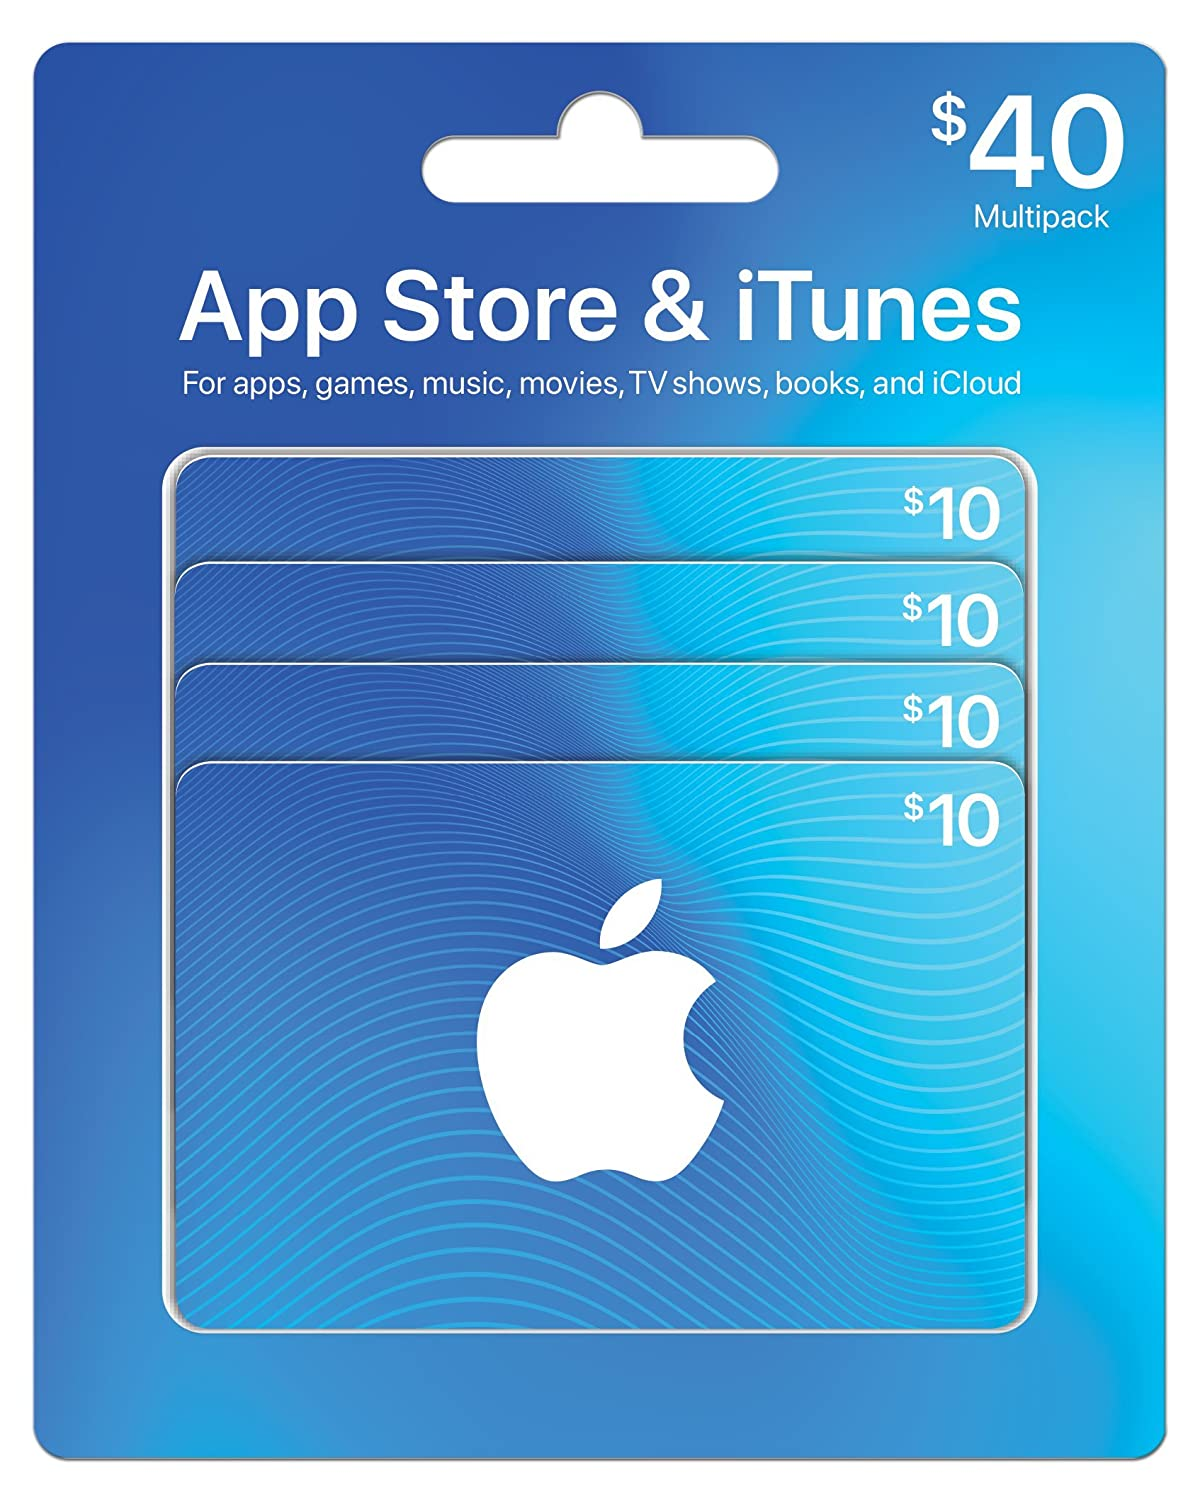 App Store & iTunes Gift Cards, Multipack of 4, Design May Vary Multipack of 4 - $10